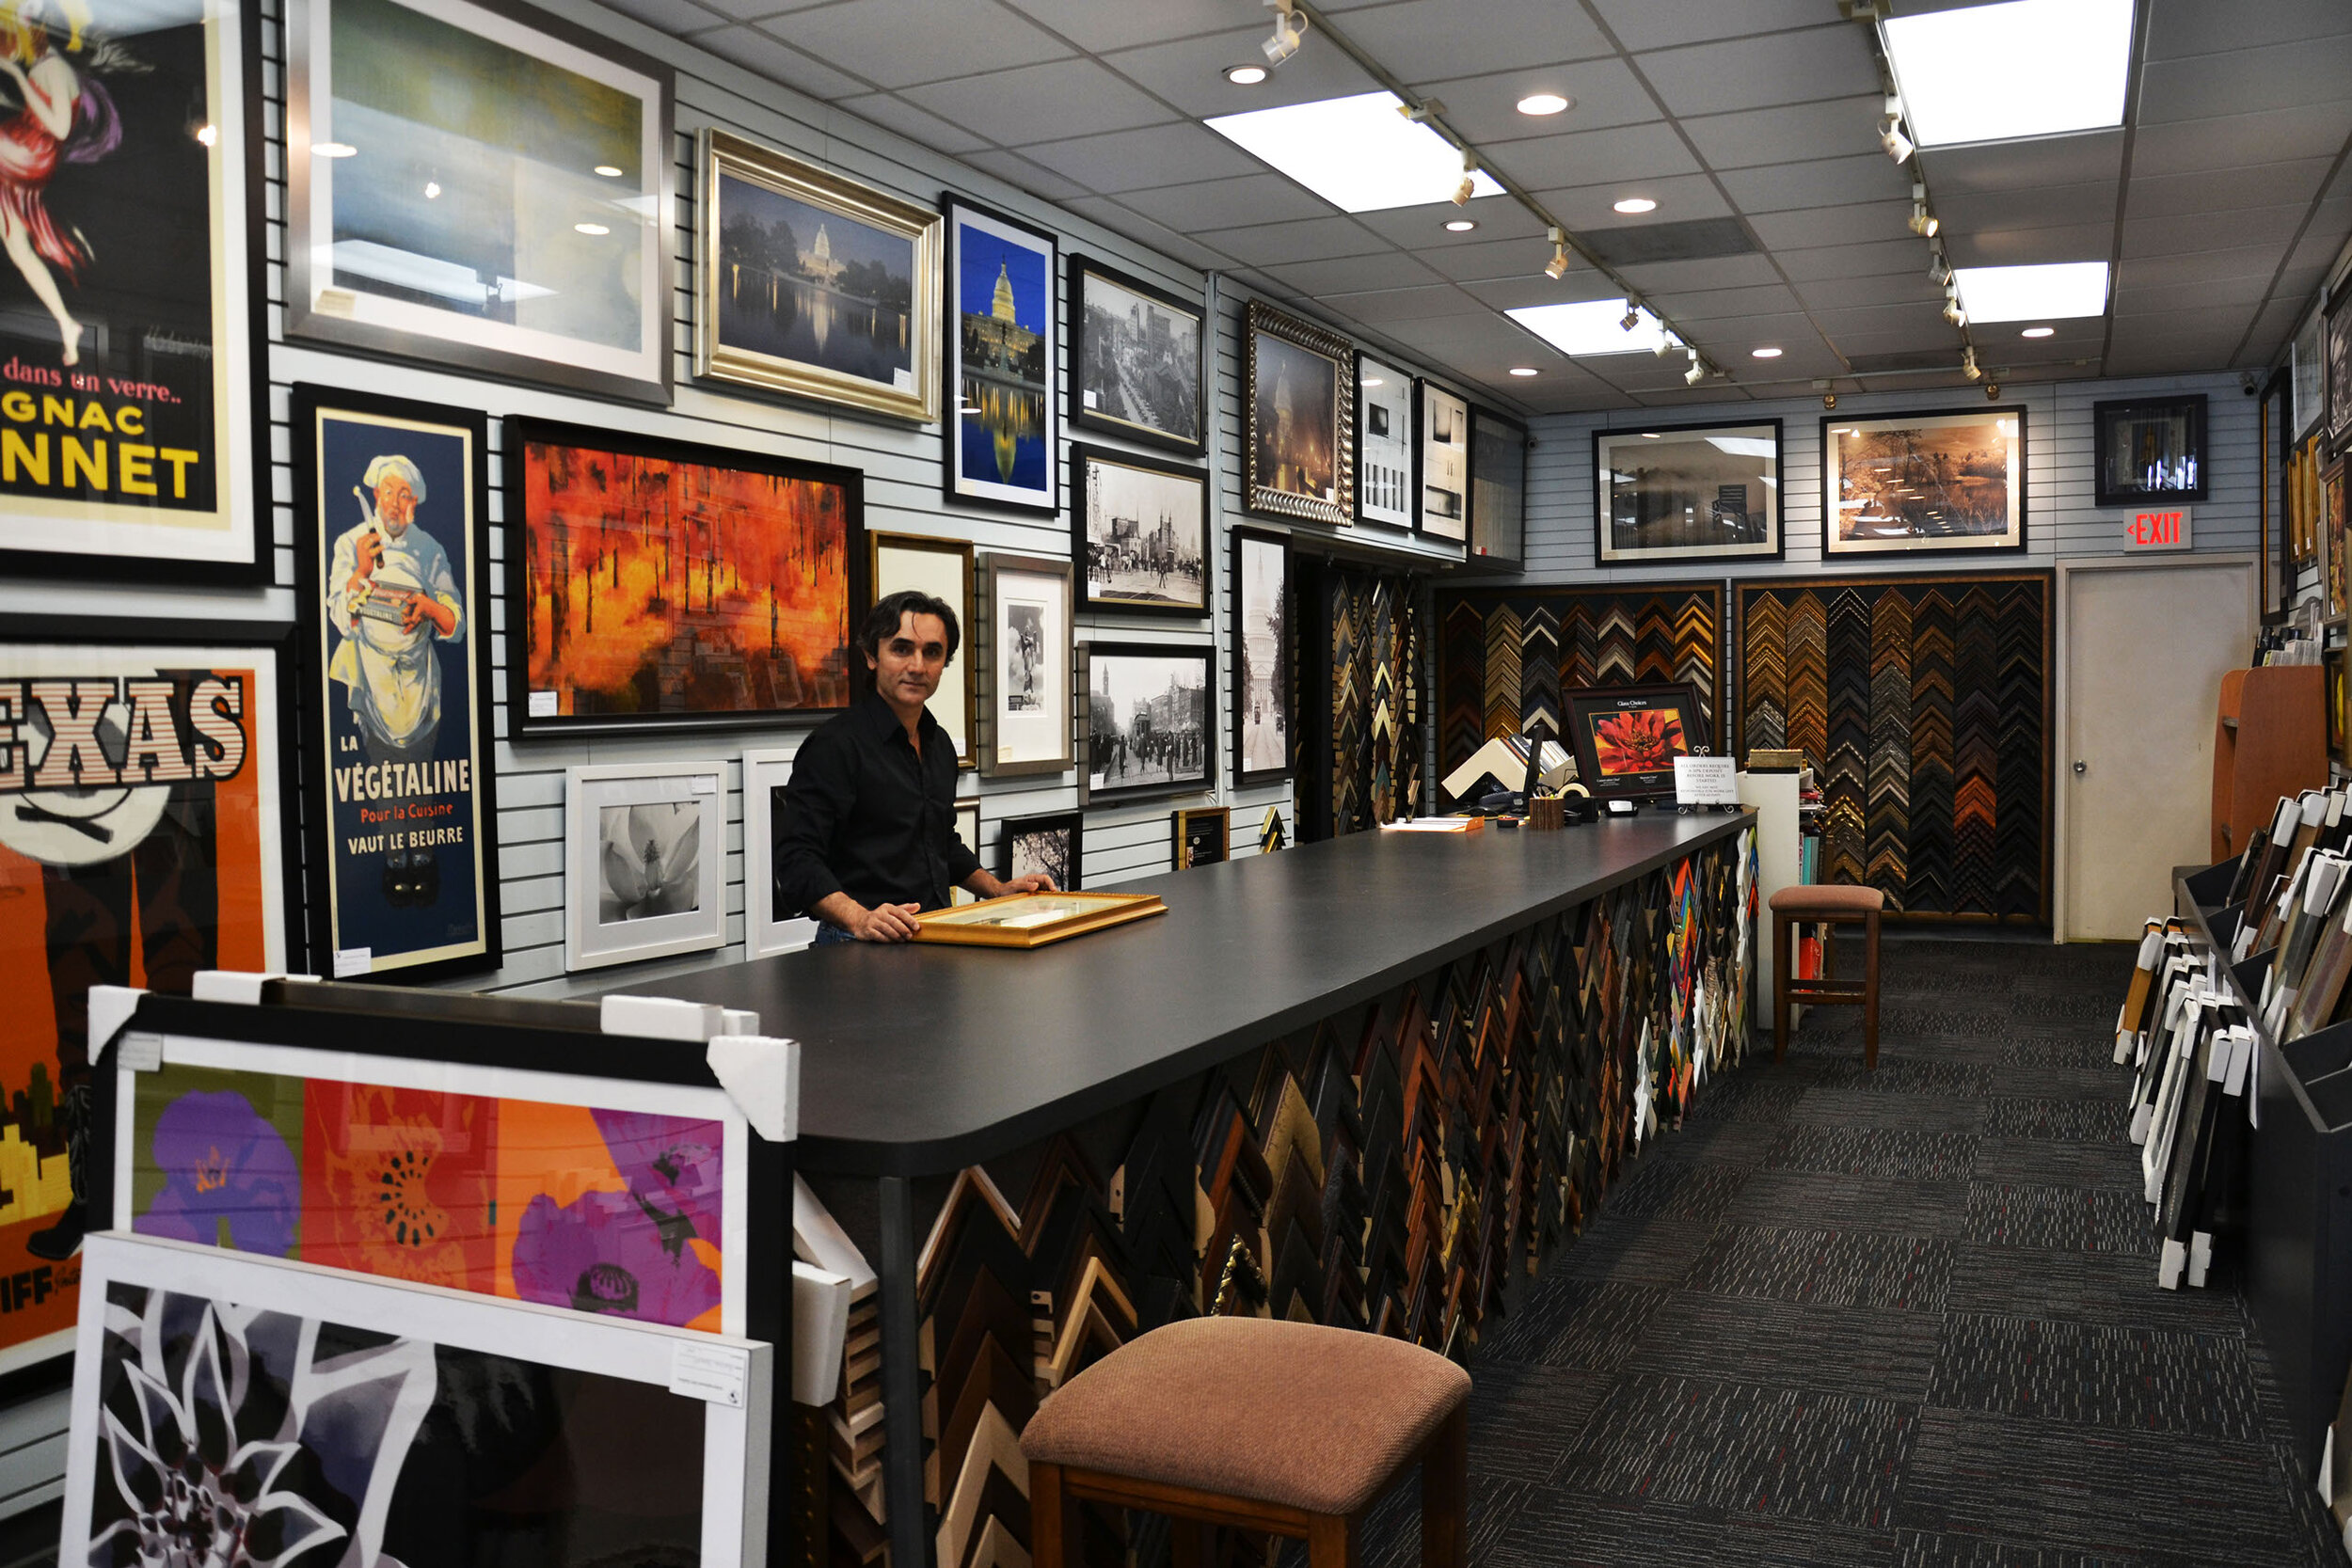 - International Art & Framing has been Washington DC's friendly neighborhood art gallery since 1992. We offer a large selection of original paintings, limited editions, and prints. Our framing services are out of this world amazing. We want your art to make you happy, so stop on by for a consultation or just to chat if you're in the mood.We welcome all projects, small or large. We also hold corporate and government accounts, as part of the General Services Administration network.